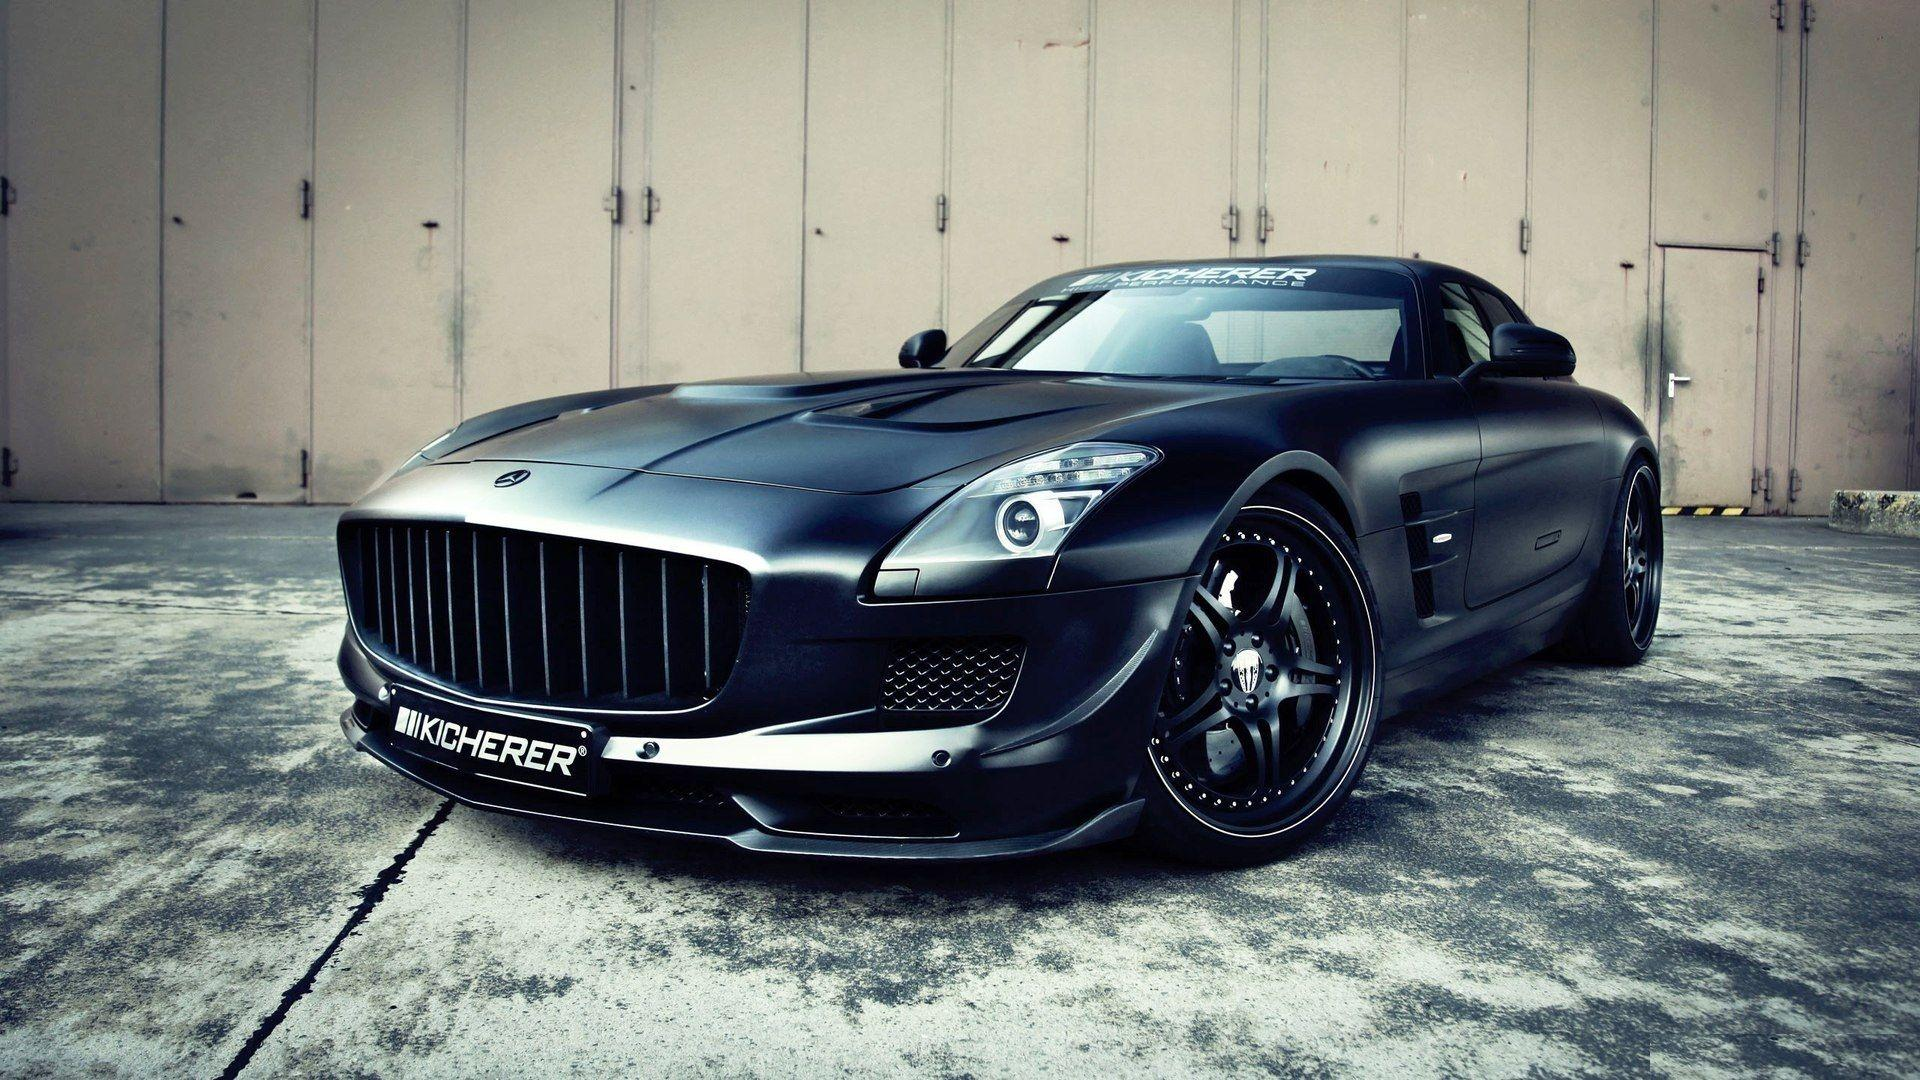 Top Car Mercedes Benz Wallpapers Wallpapers